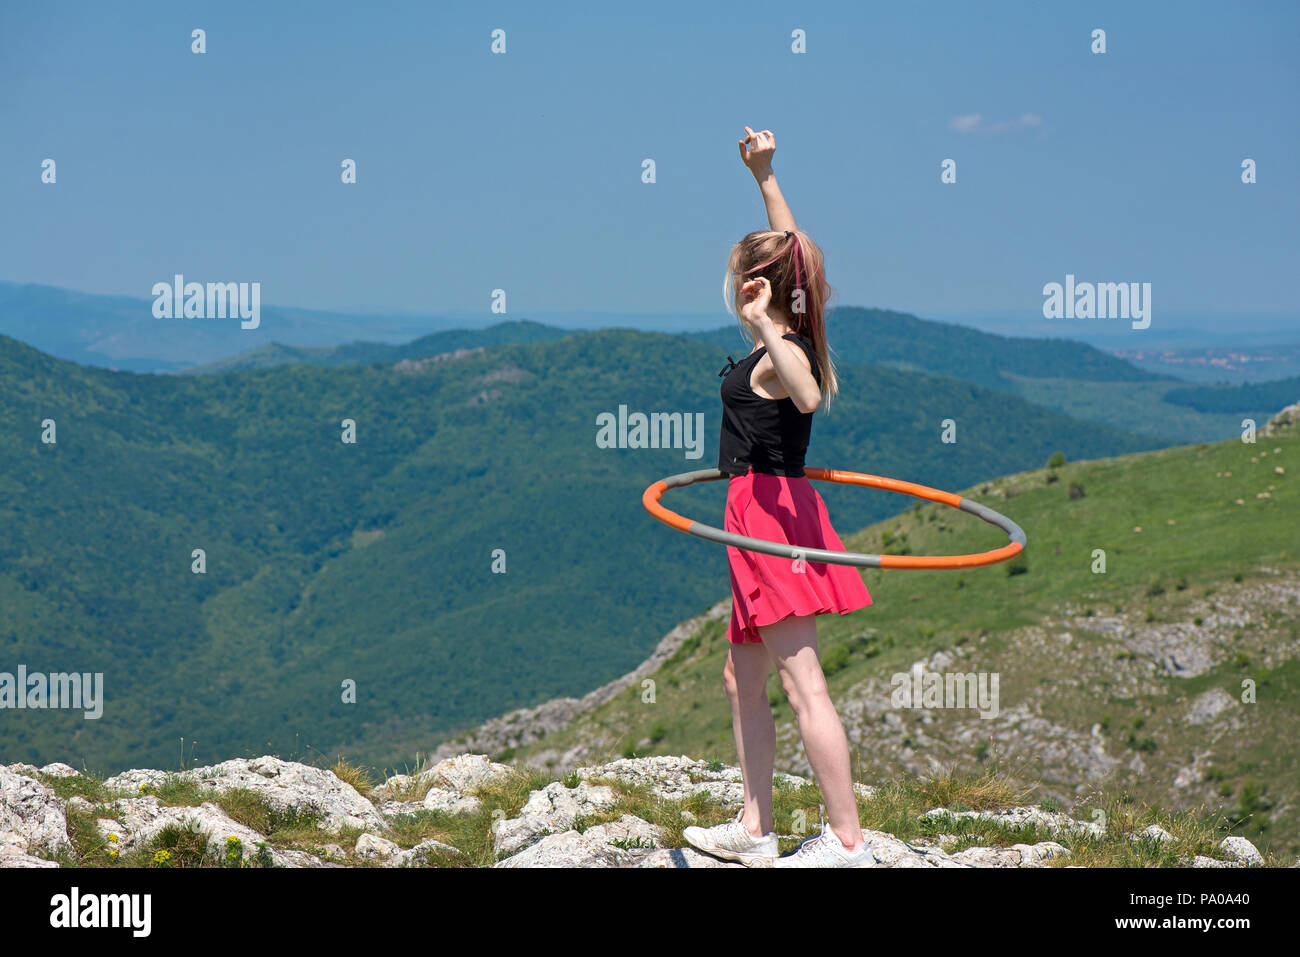 Young woman in pink skirts rotates hula hoop at the mountain top on beautiful nature background. Healthy lifestyle and love for fitness and sport. Fre - Stock Image